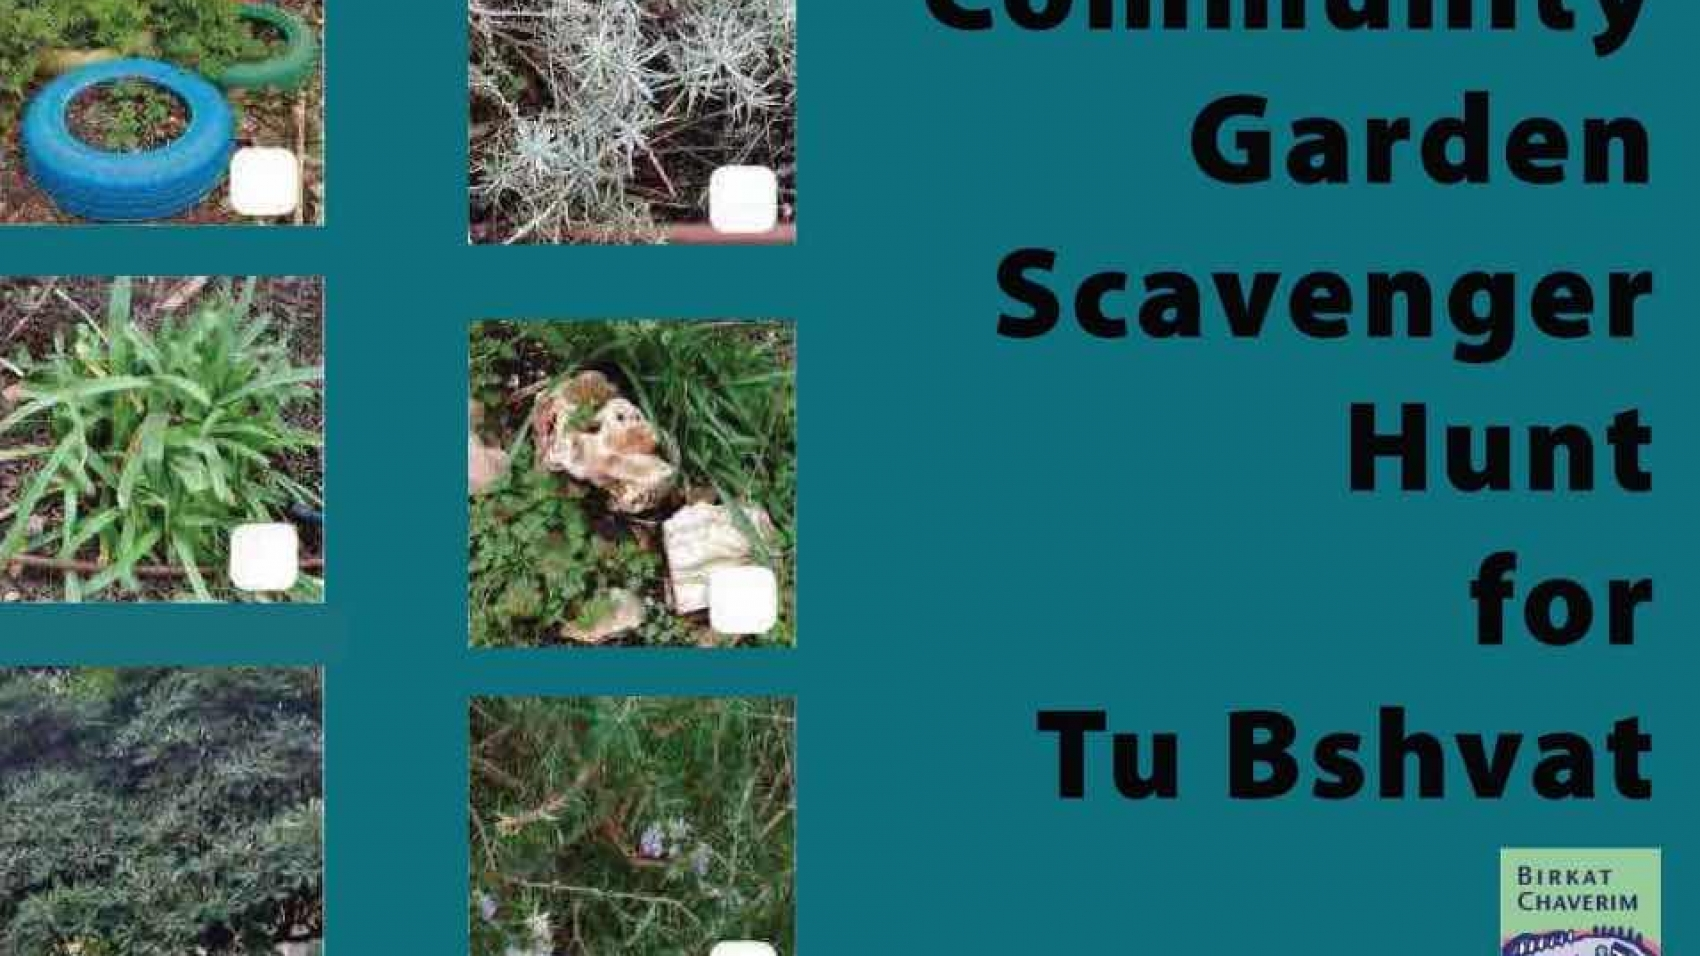 Featured image Community garden scavenger hunt for tu bshvat